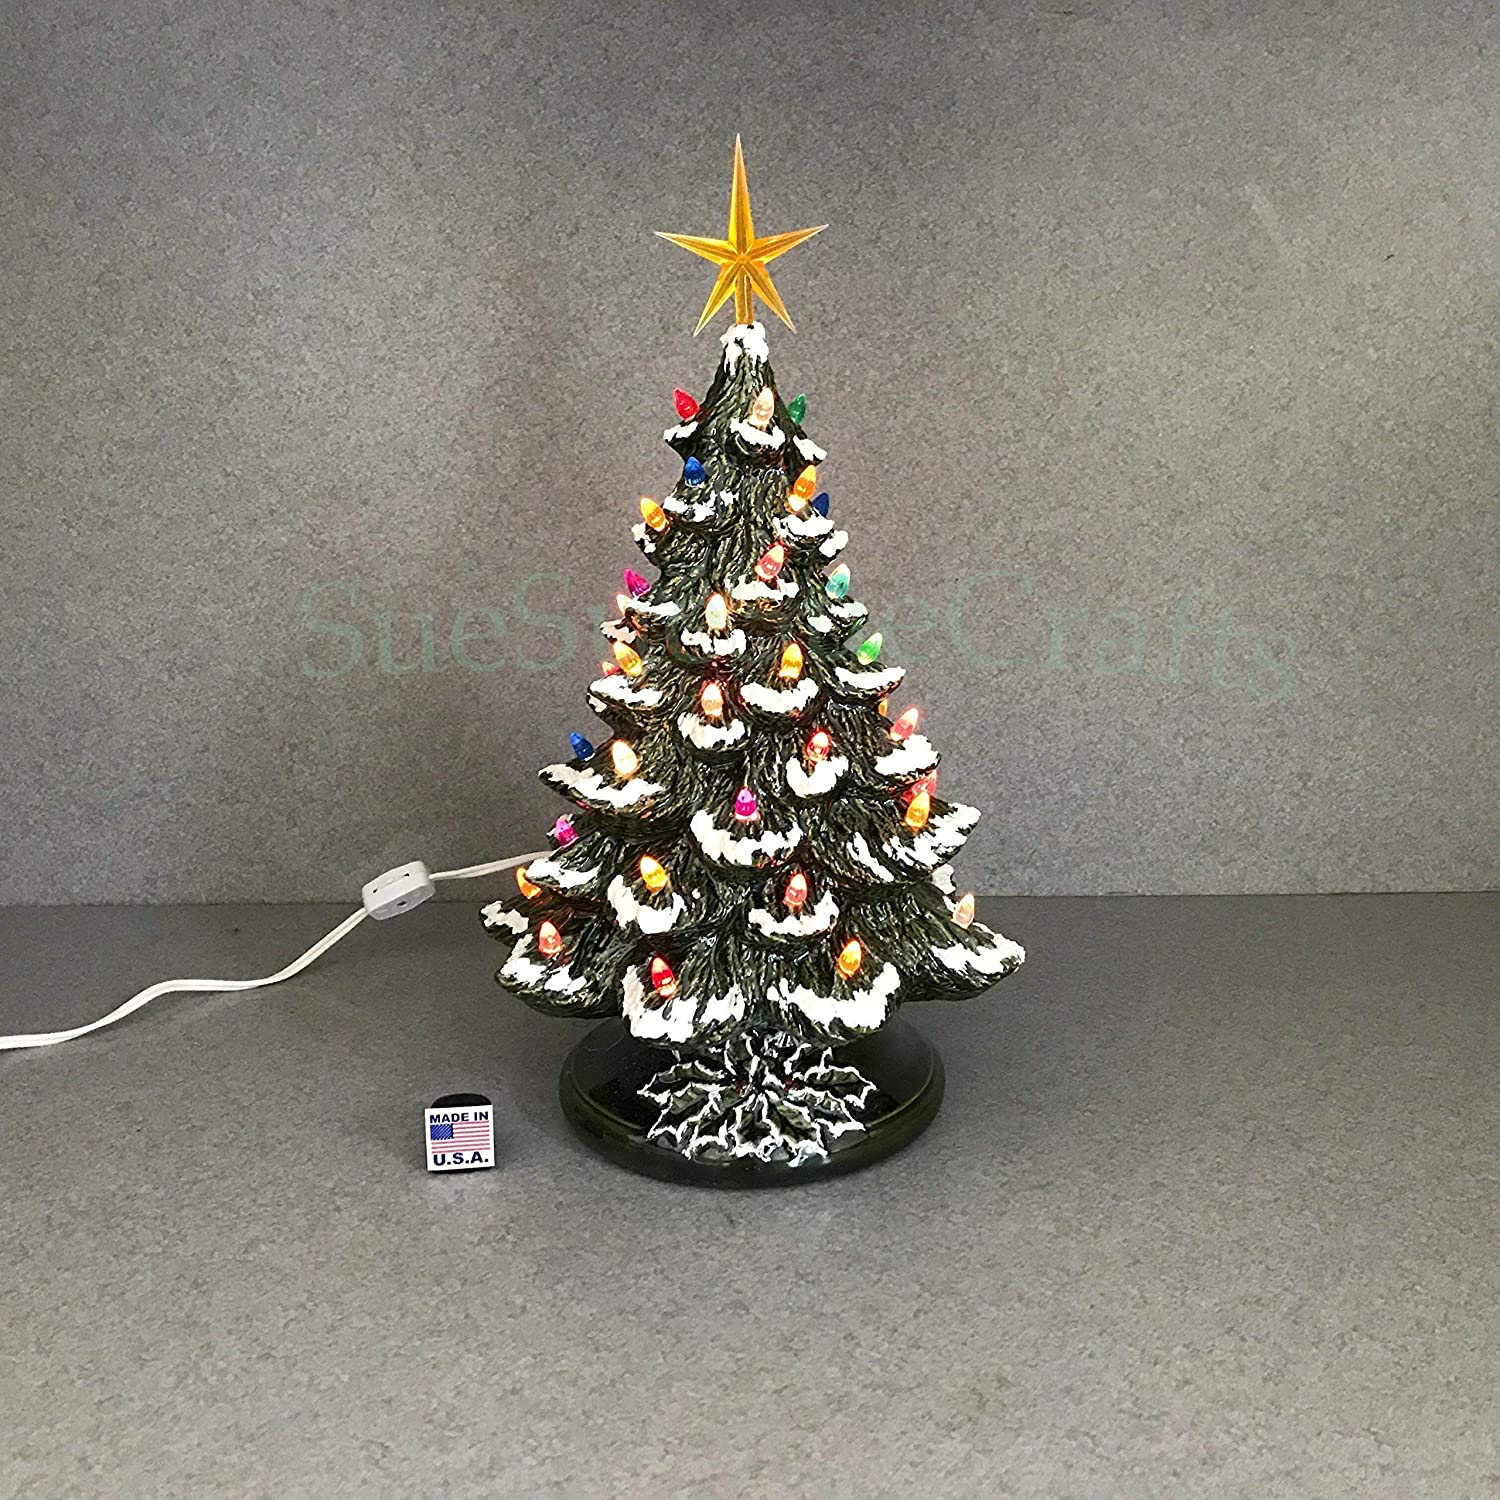 Ceramic Christmas Tree With Snow.Traditional Green Ceramic Christmas Tree With Snow 15 Inch Tabletop Electric T81gs